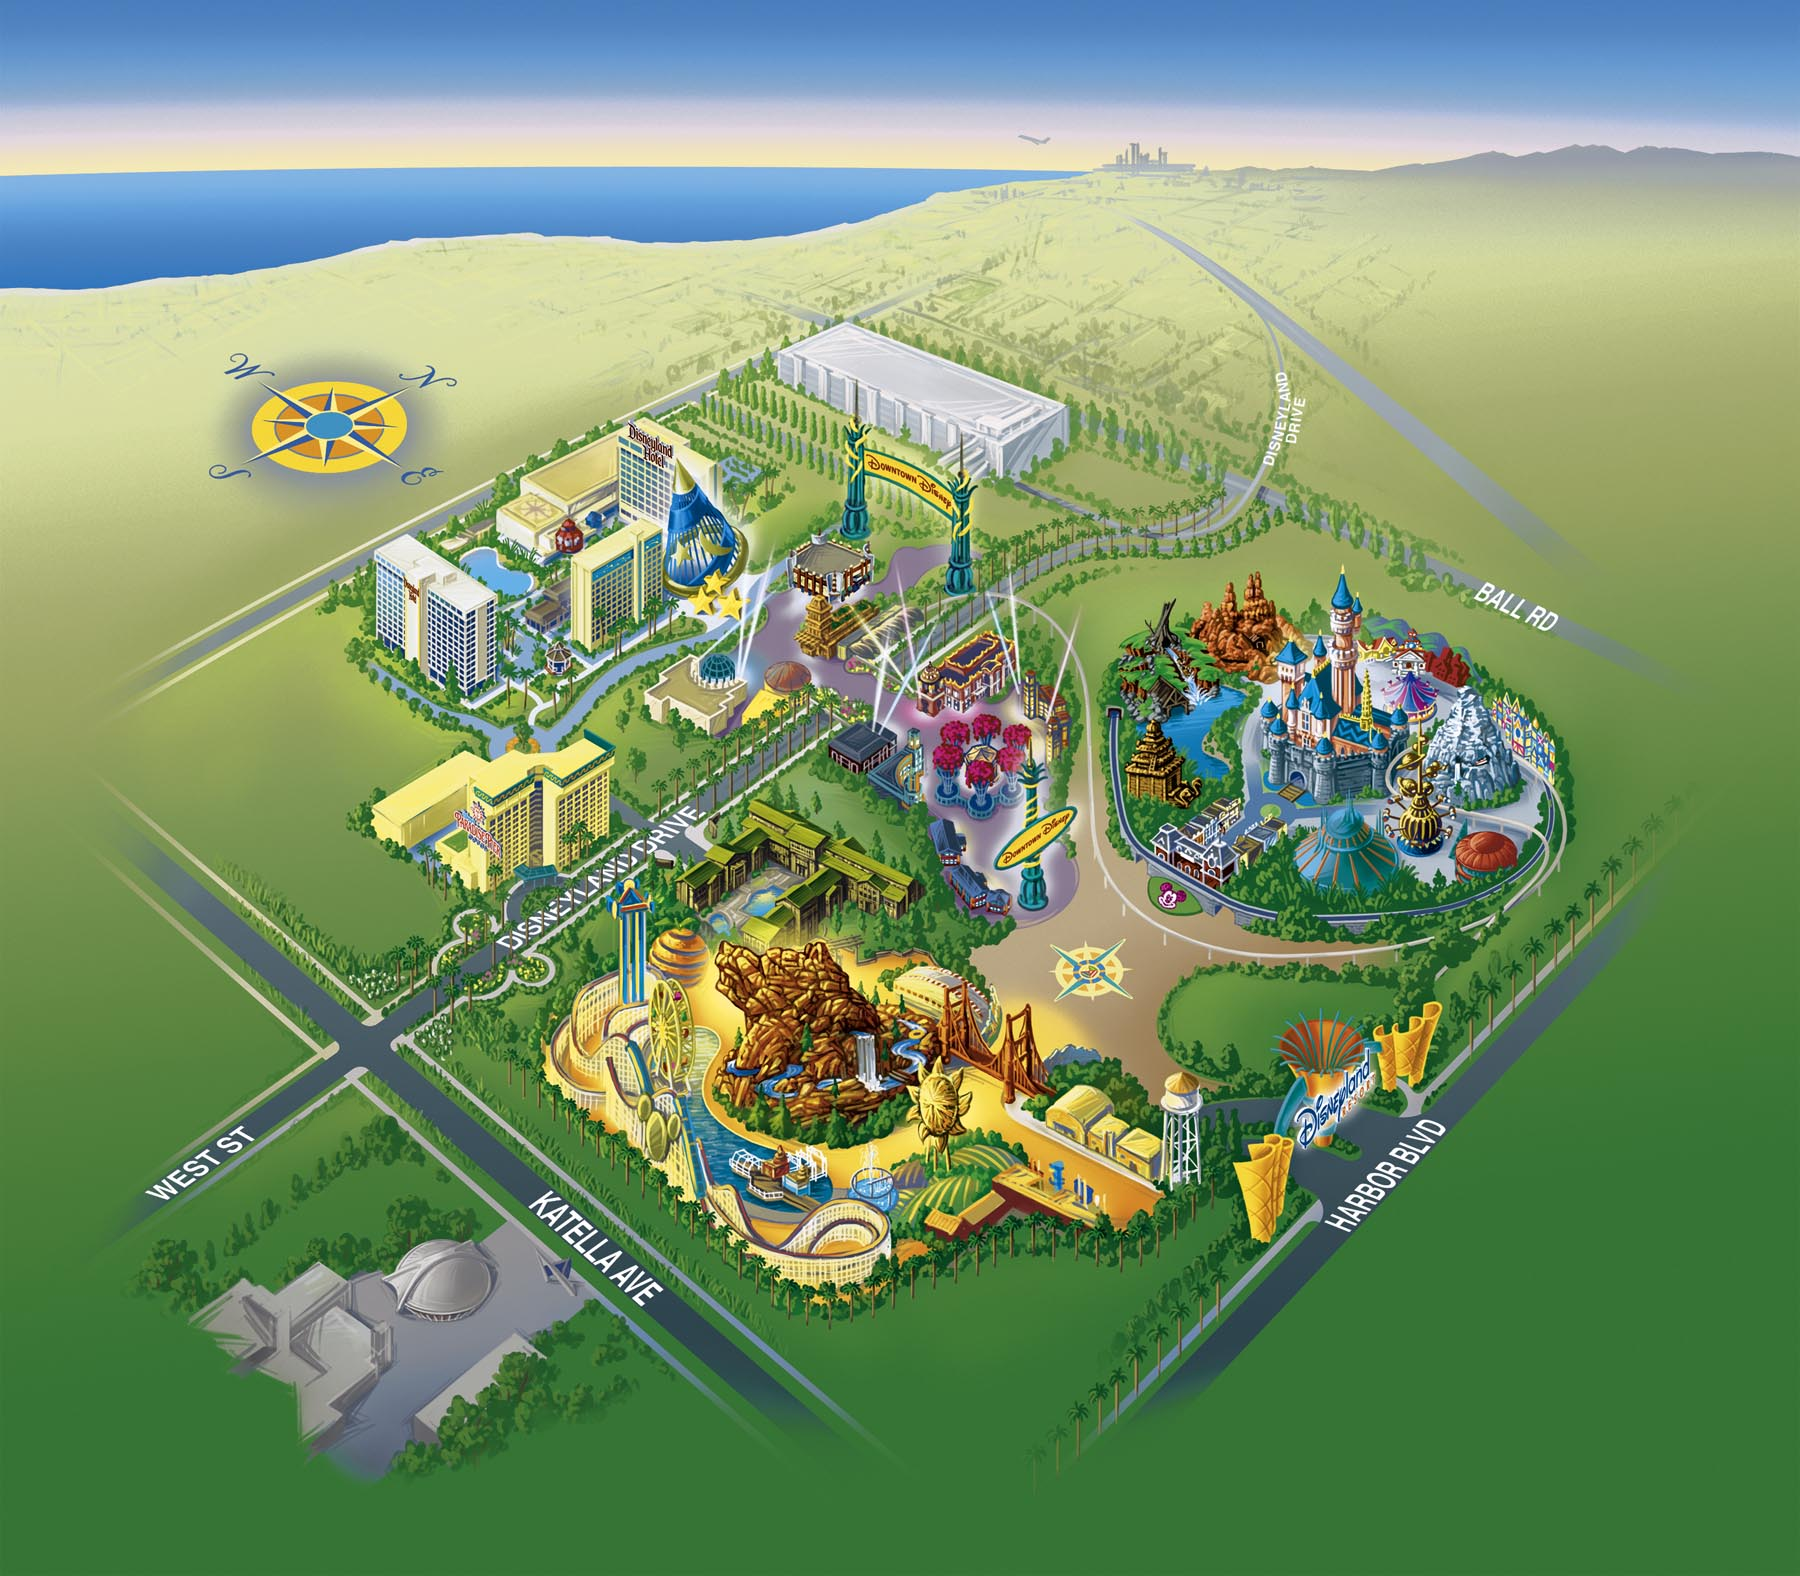 image relating to Printable Disneyland Maps named Disneyland Vacation resort Disney Parks Wiki FANDOM run via Wikia